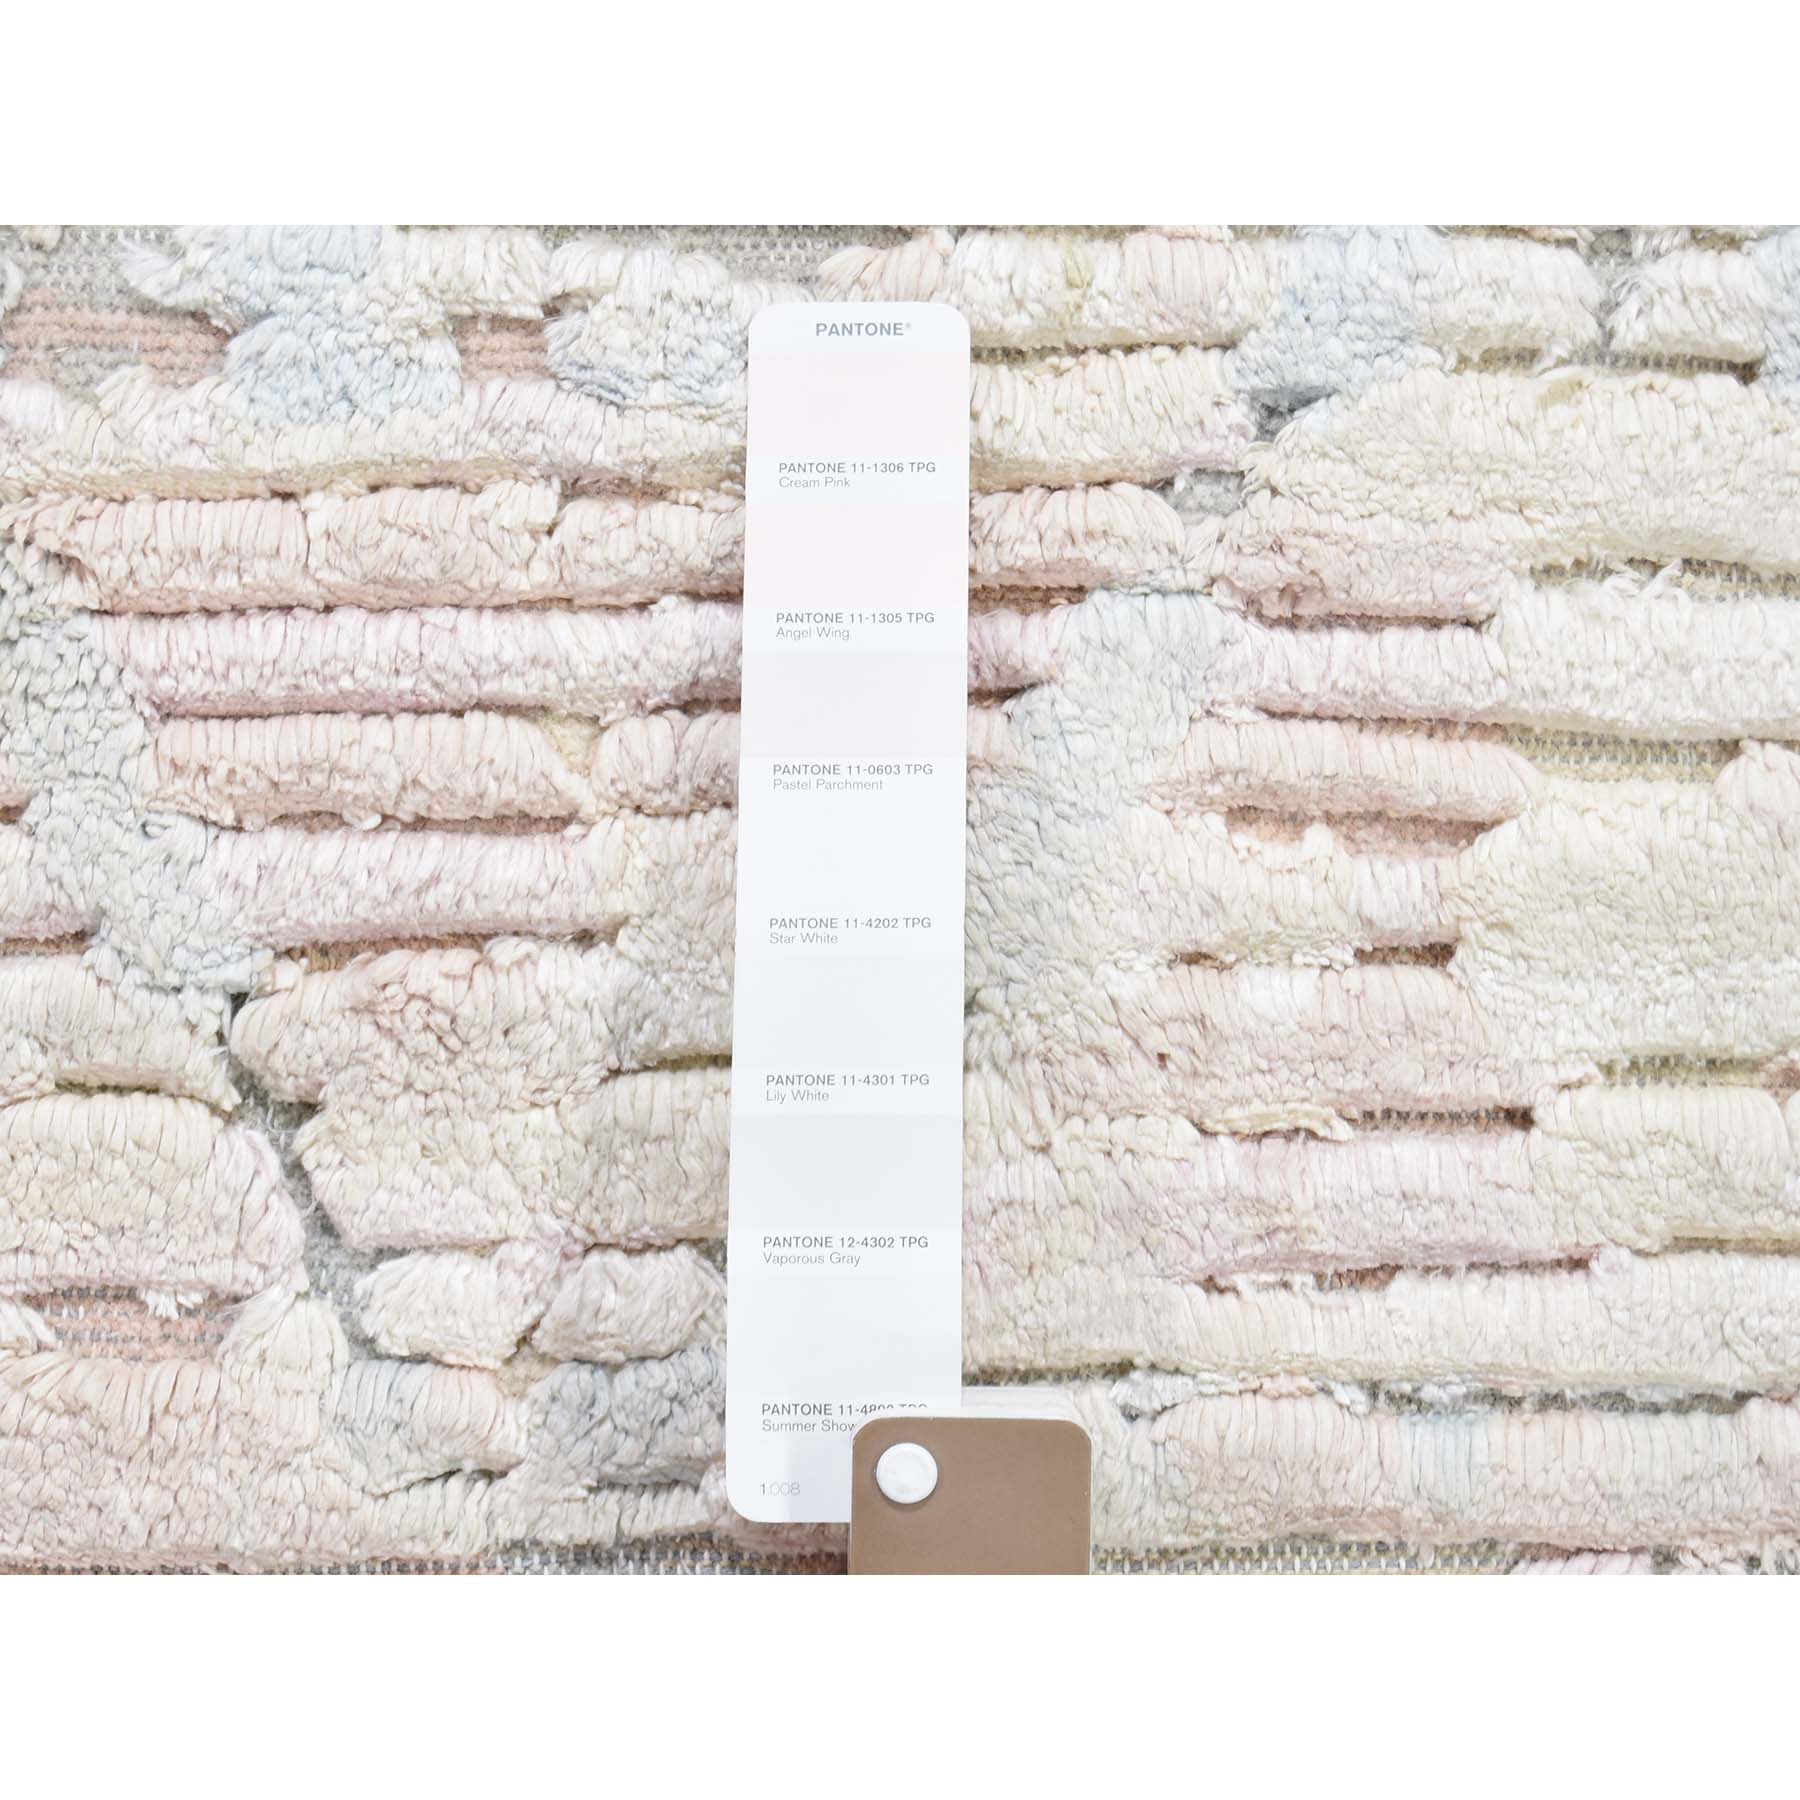 2-x2- Sampler luxurious Plush Pure Silk With Textured Wool Hand-Knotted Oriental Rug